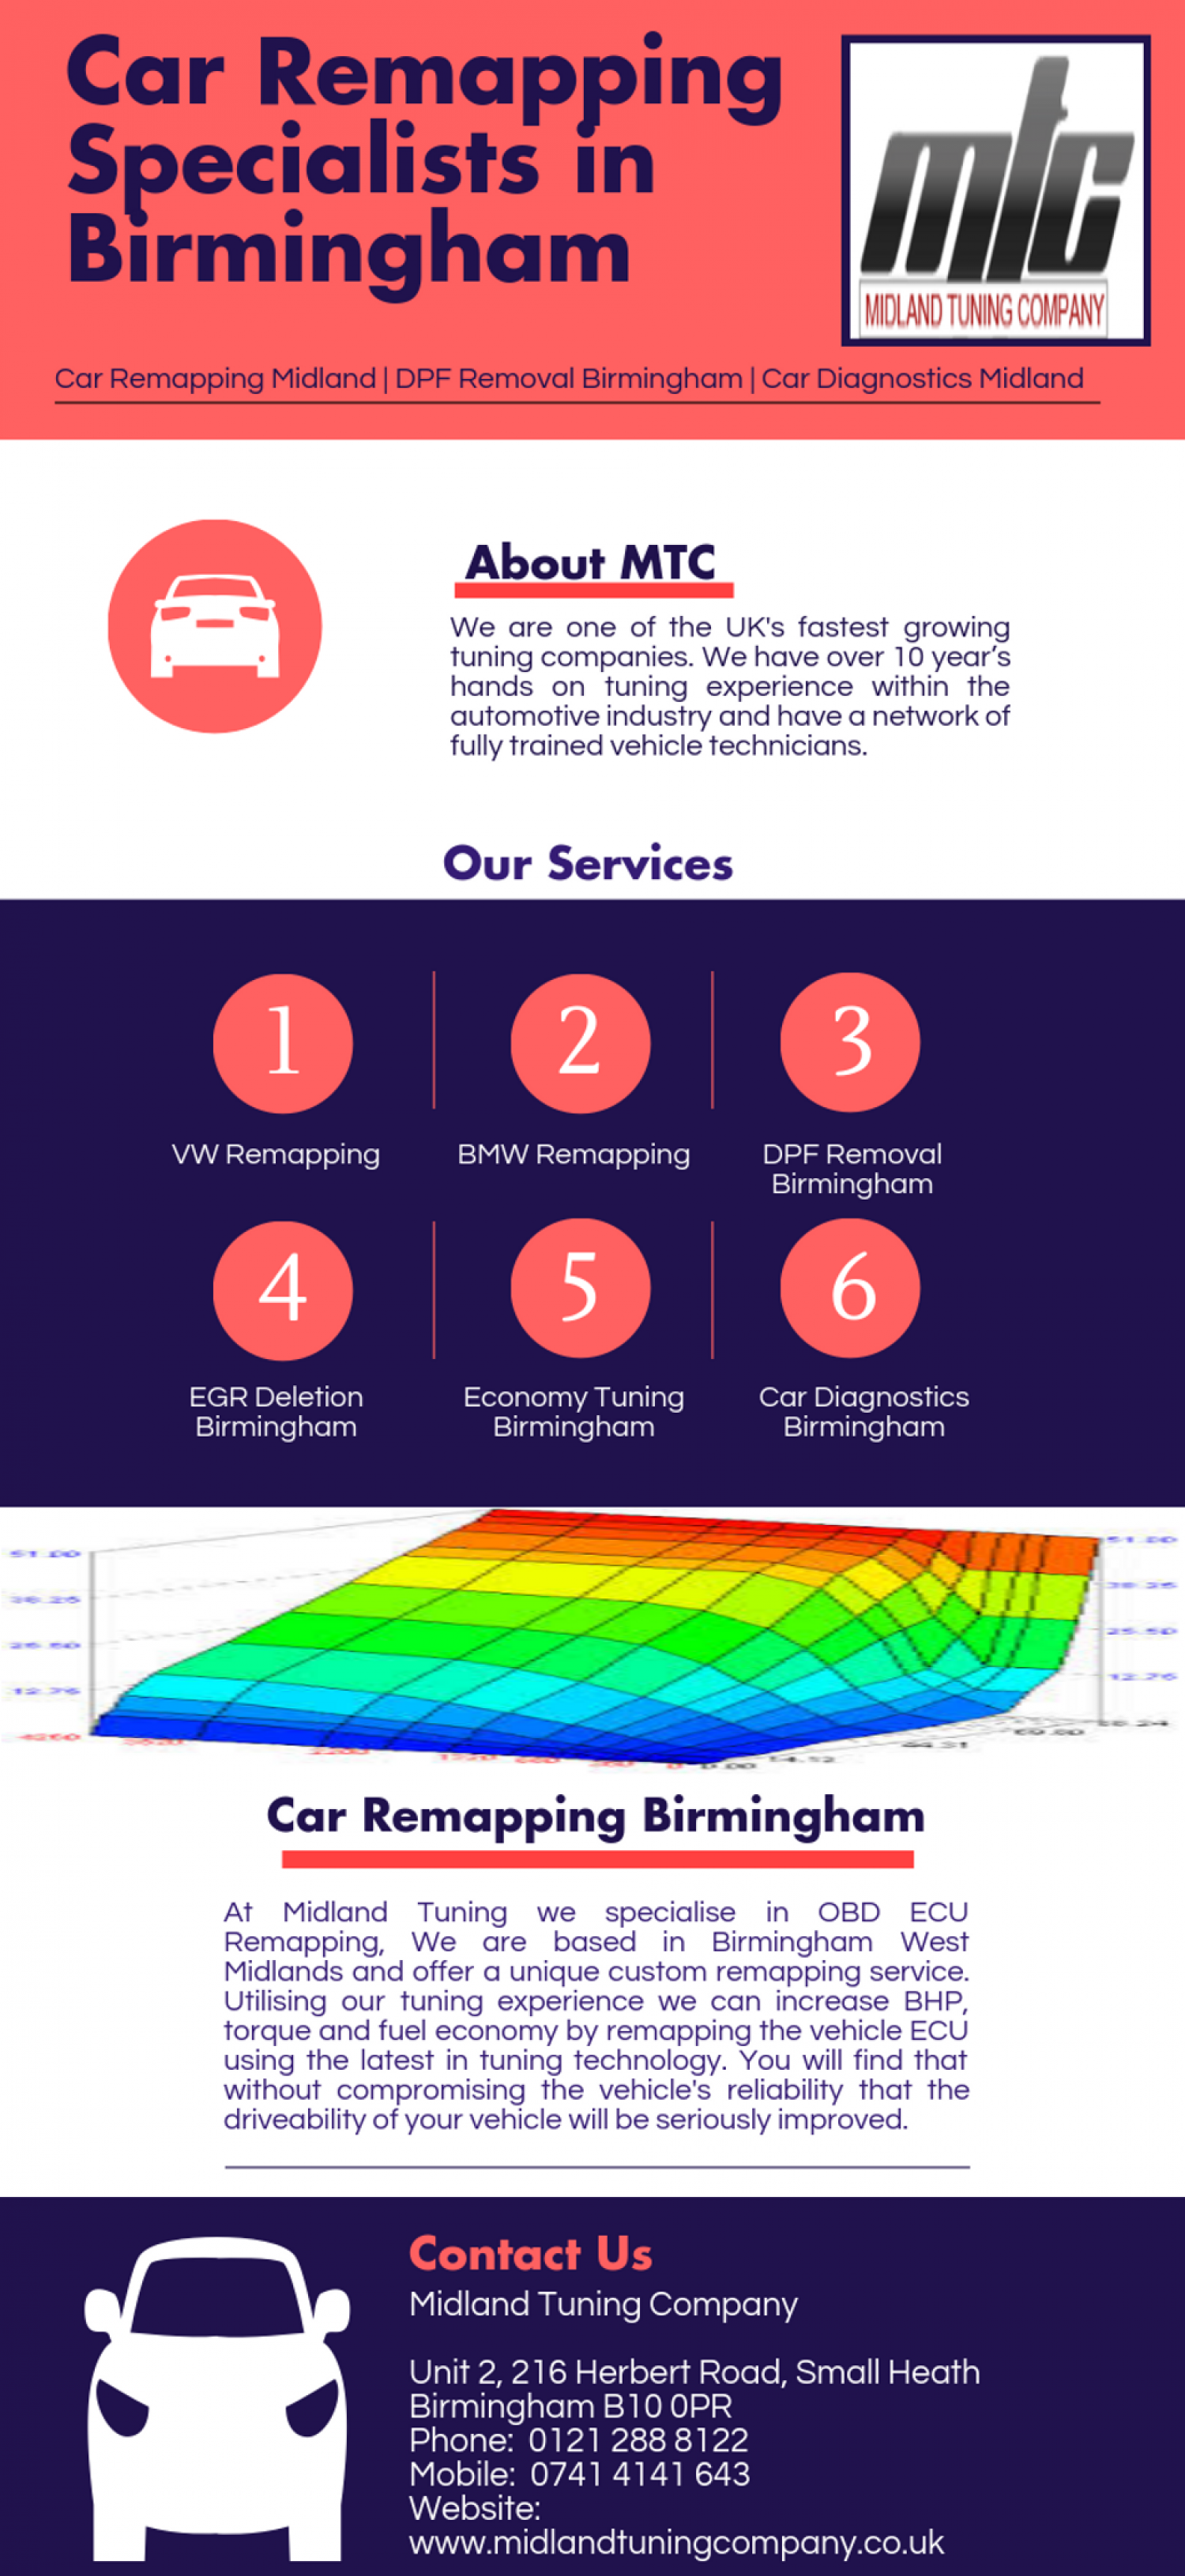 Car Remapping Specialists In Birmingham